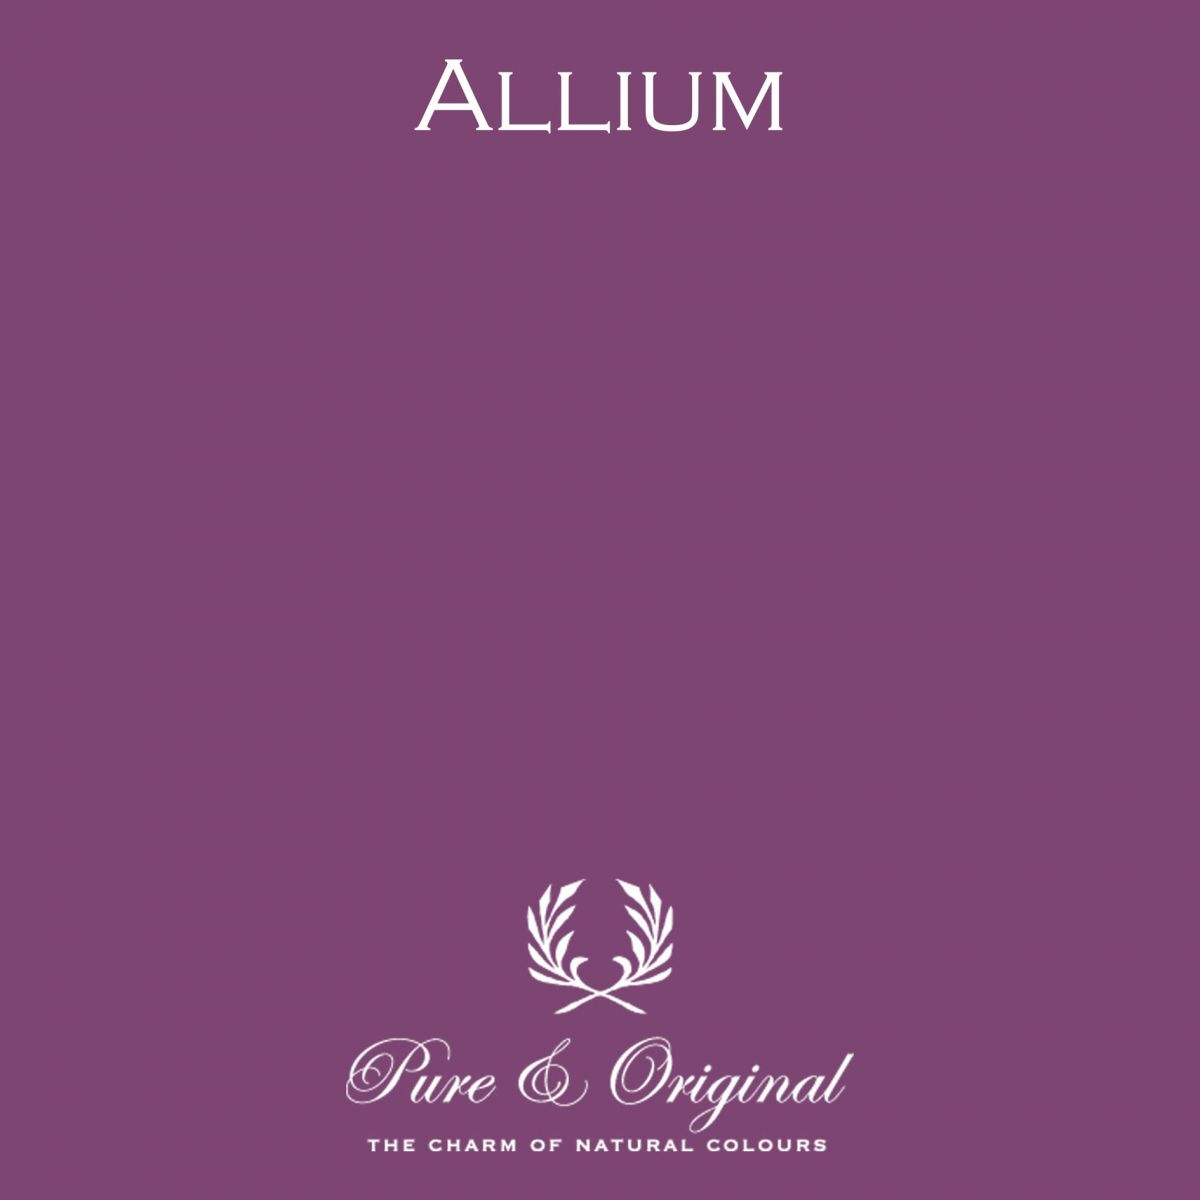 Pure & Original Allium